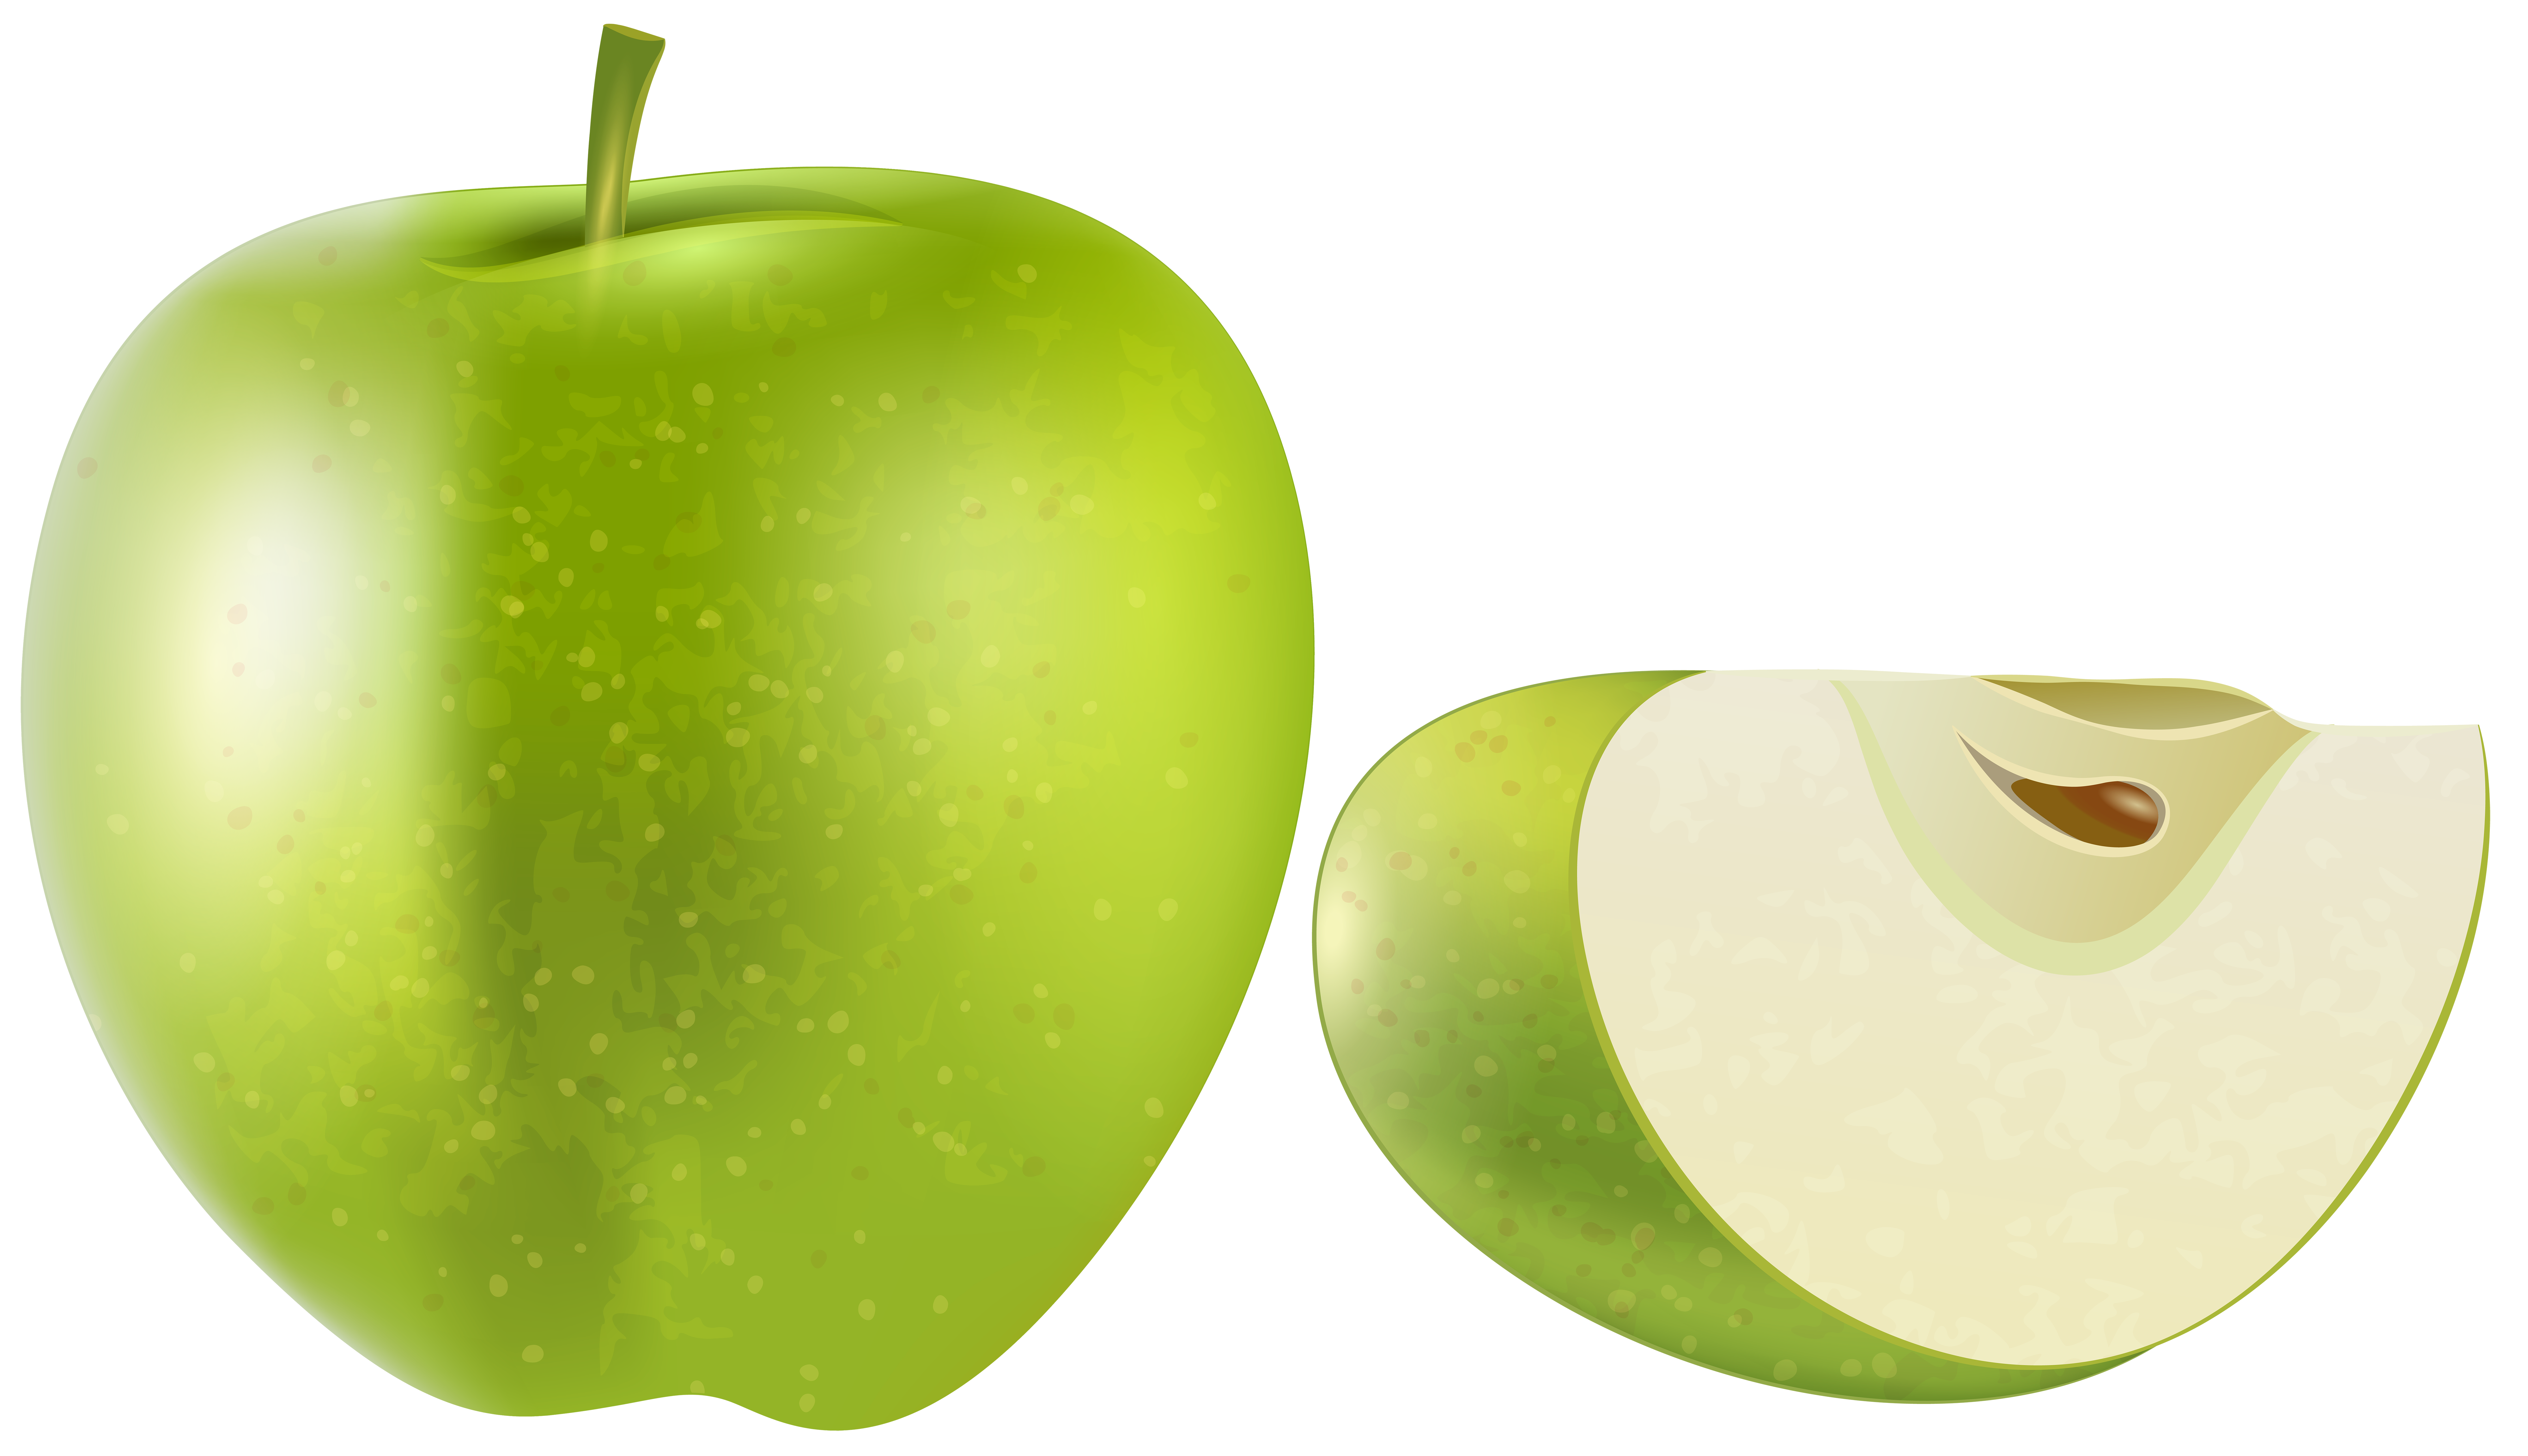 Green apple clipart transparent graphic library library Green Apple Transparent PNG Clip Art Image | Gallery Yopriceville ... graphic library library